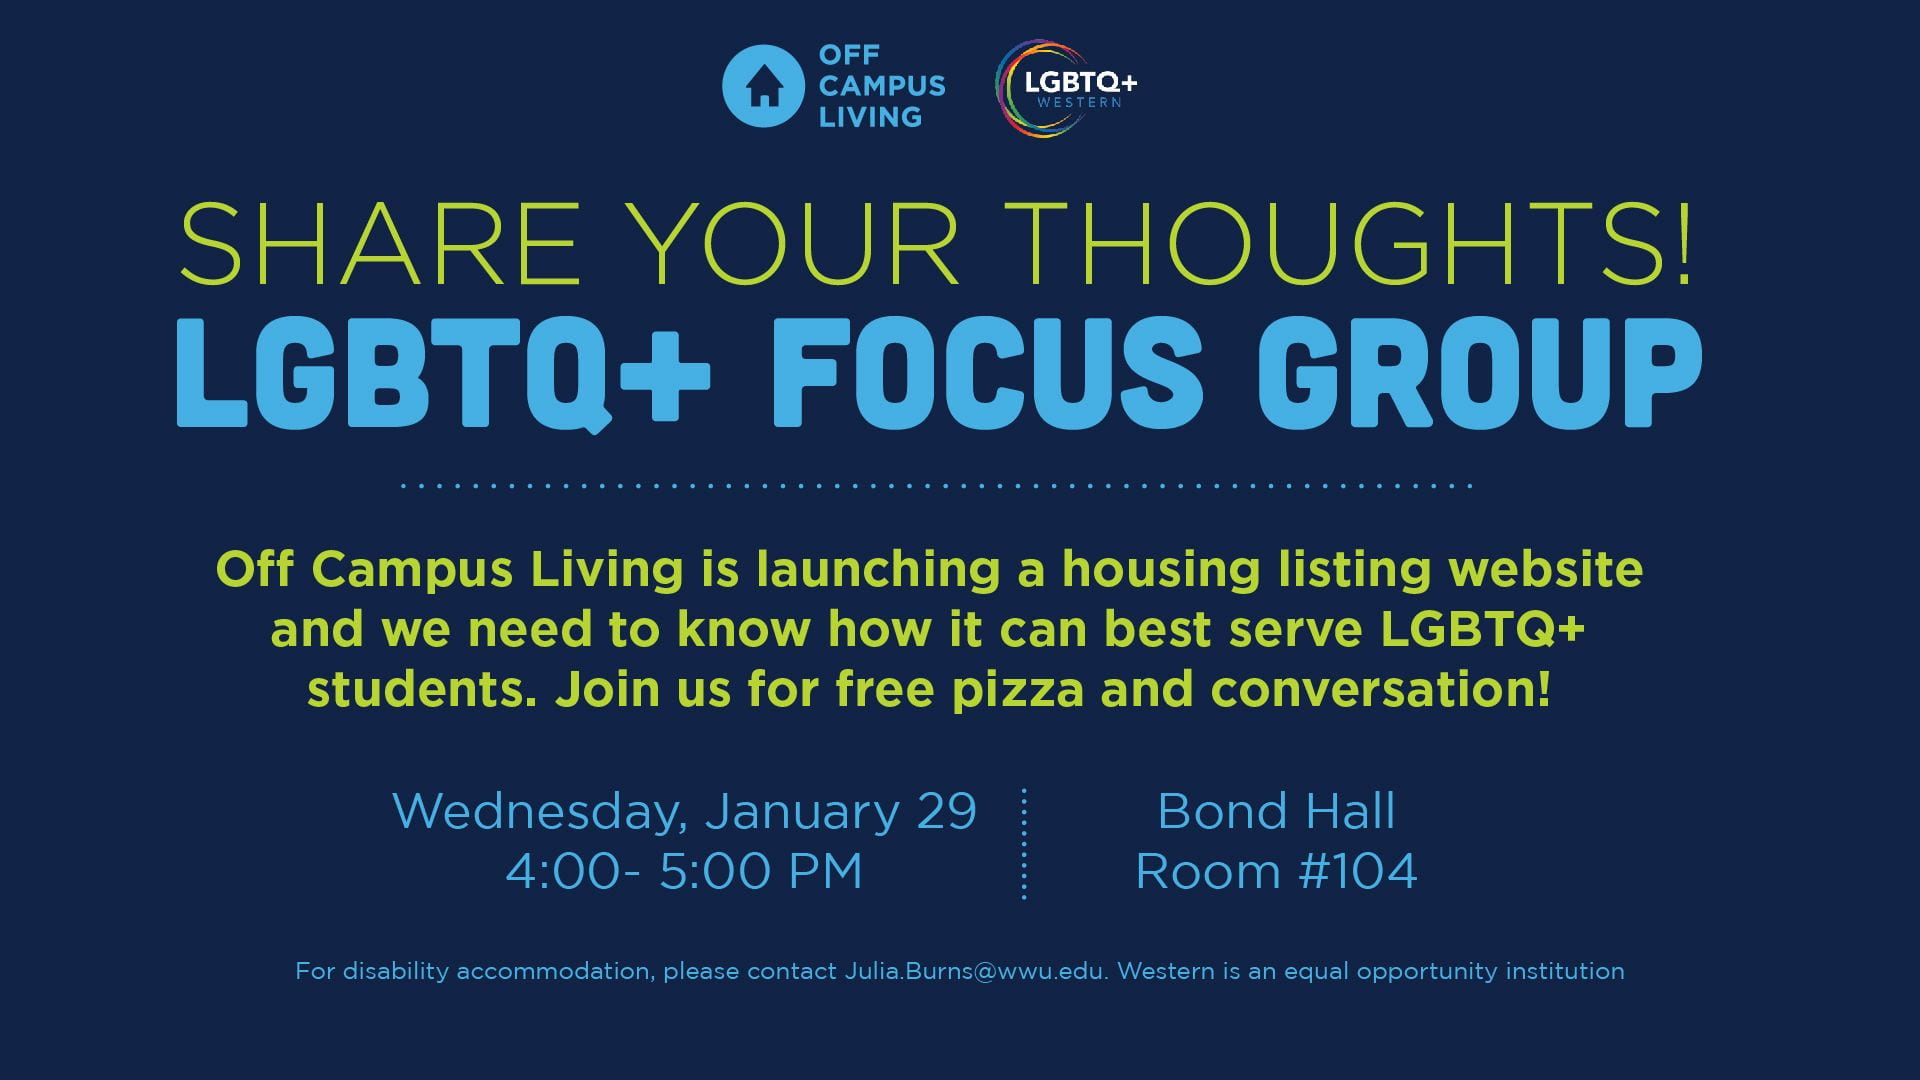 Off Campus Living is launching a new housing listing website and we want to know how it can best serve LGBTQ+ students. Join us for FREE pizza and conversation. Where: Bond Hall 104 When: 4-5pm Who: All are welcome!